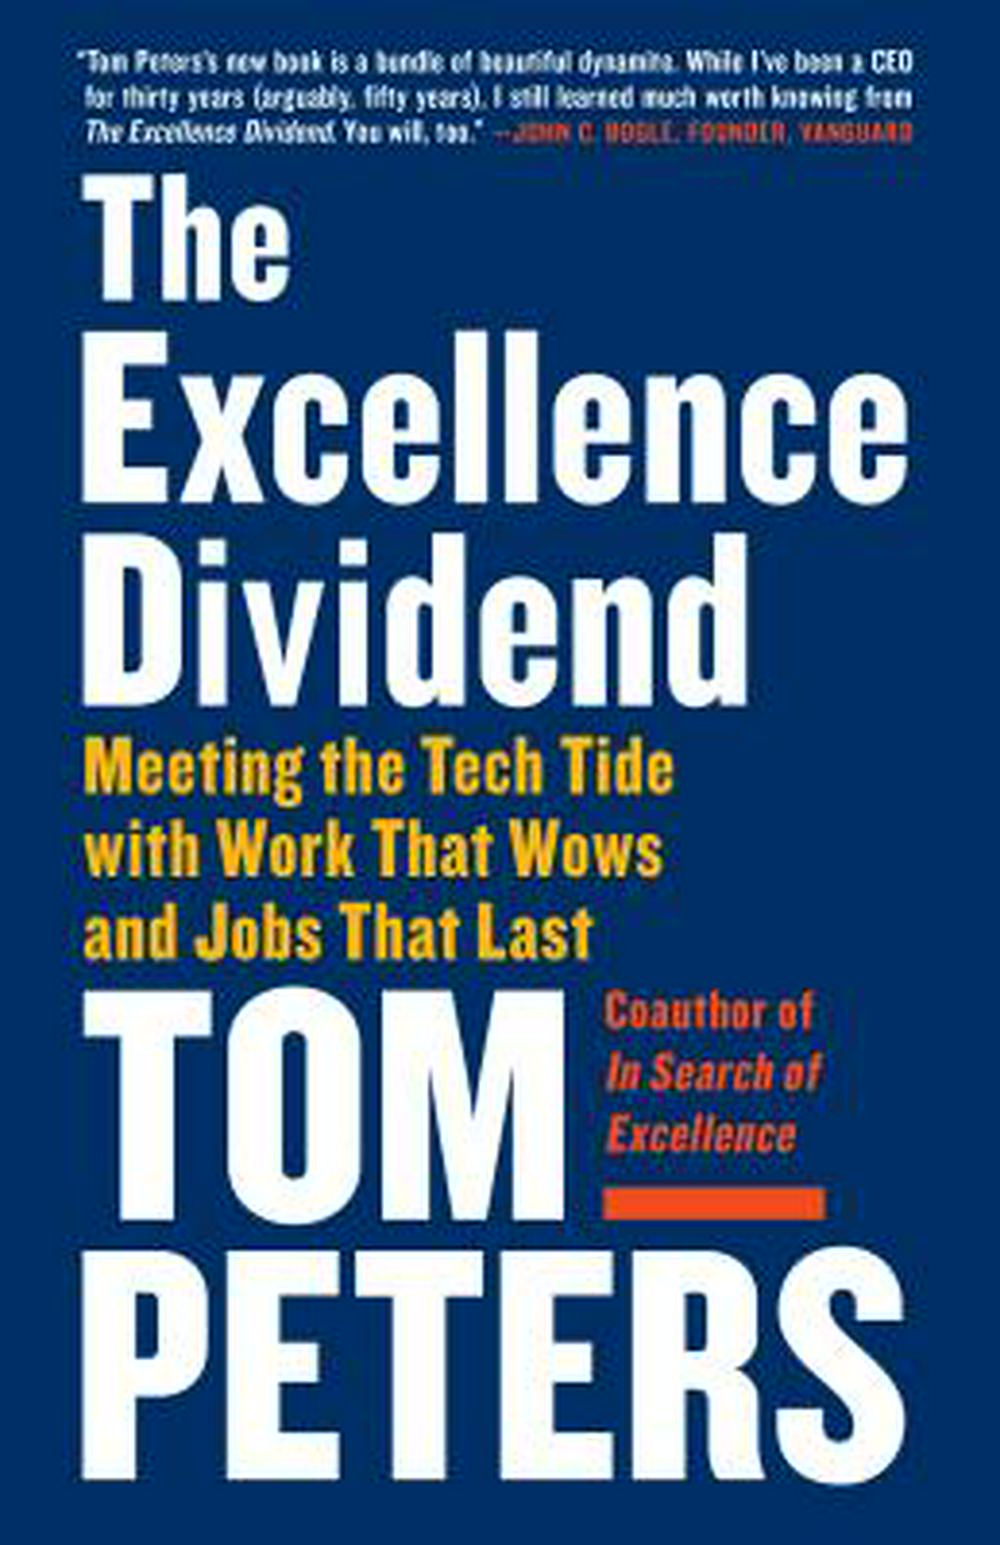 The Excellence Dividend: Meeting the Tech Tide with Work That Wows and Jobs That Last by Thomas J Peters, ISBN: 9780525434627